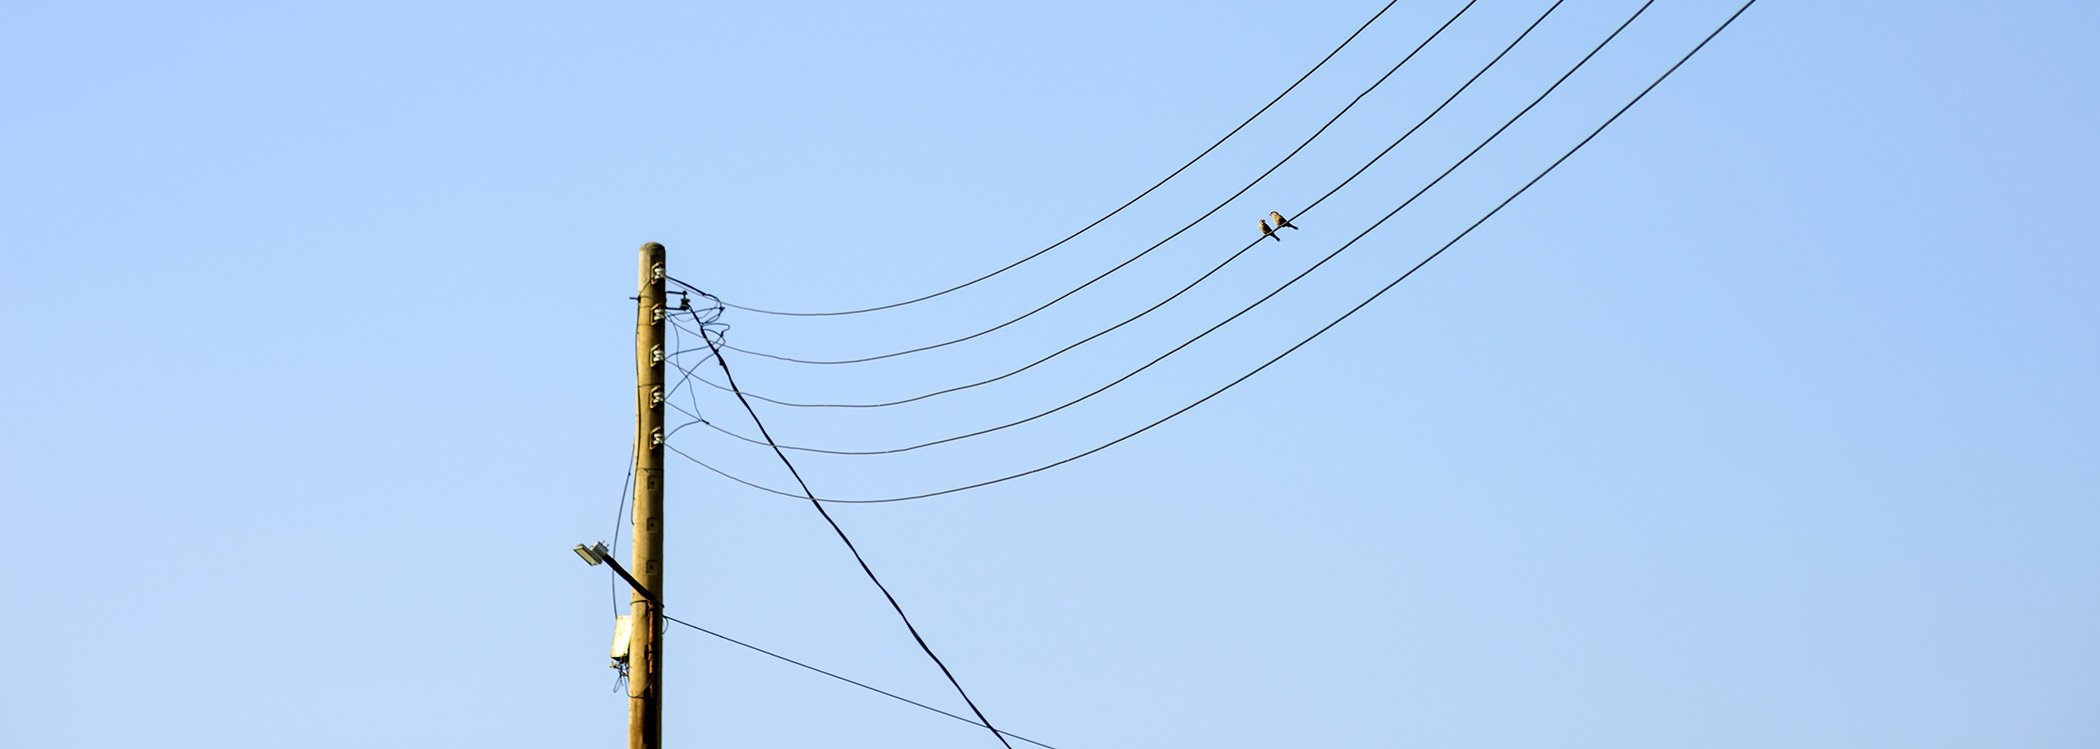 utility-pole-inspection-2.jpg